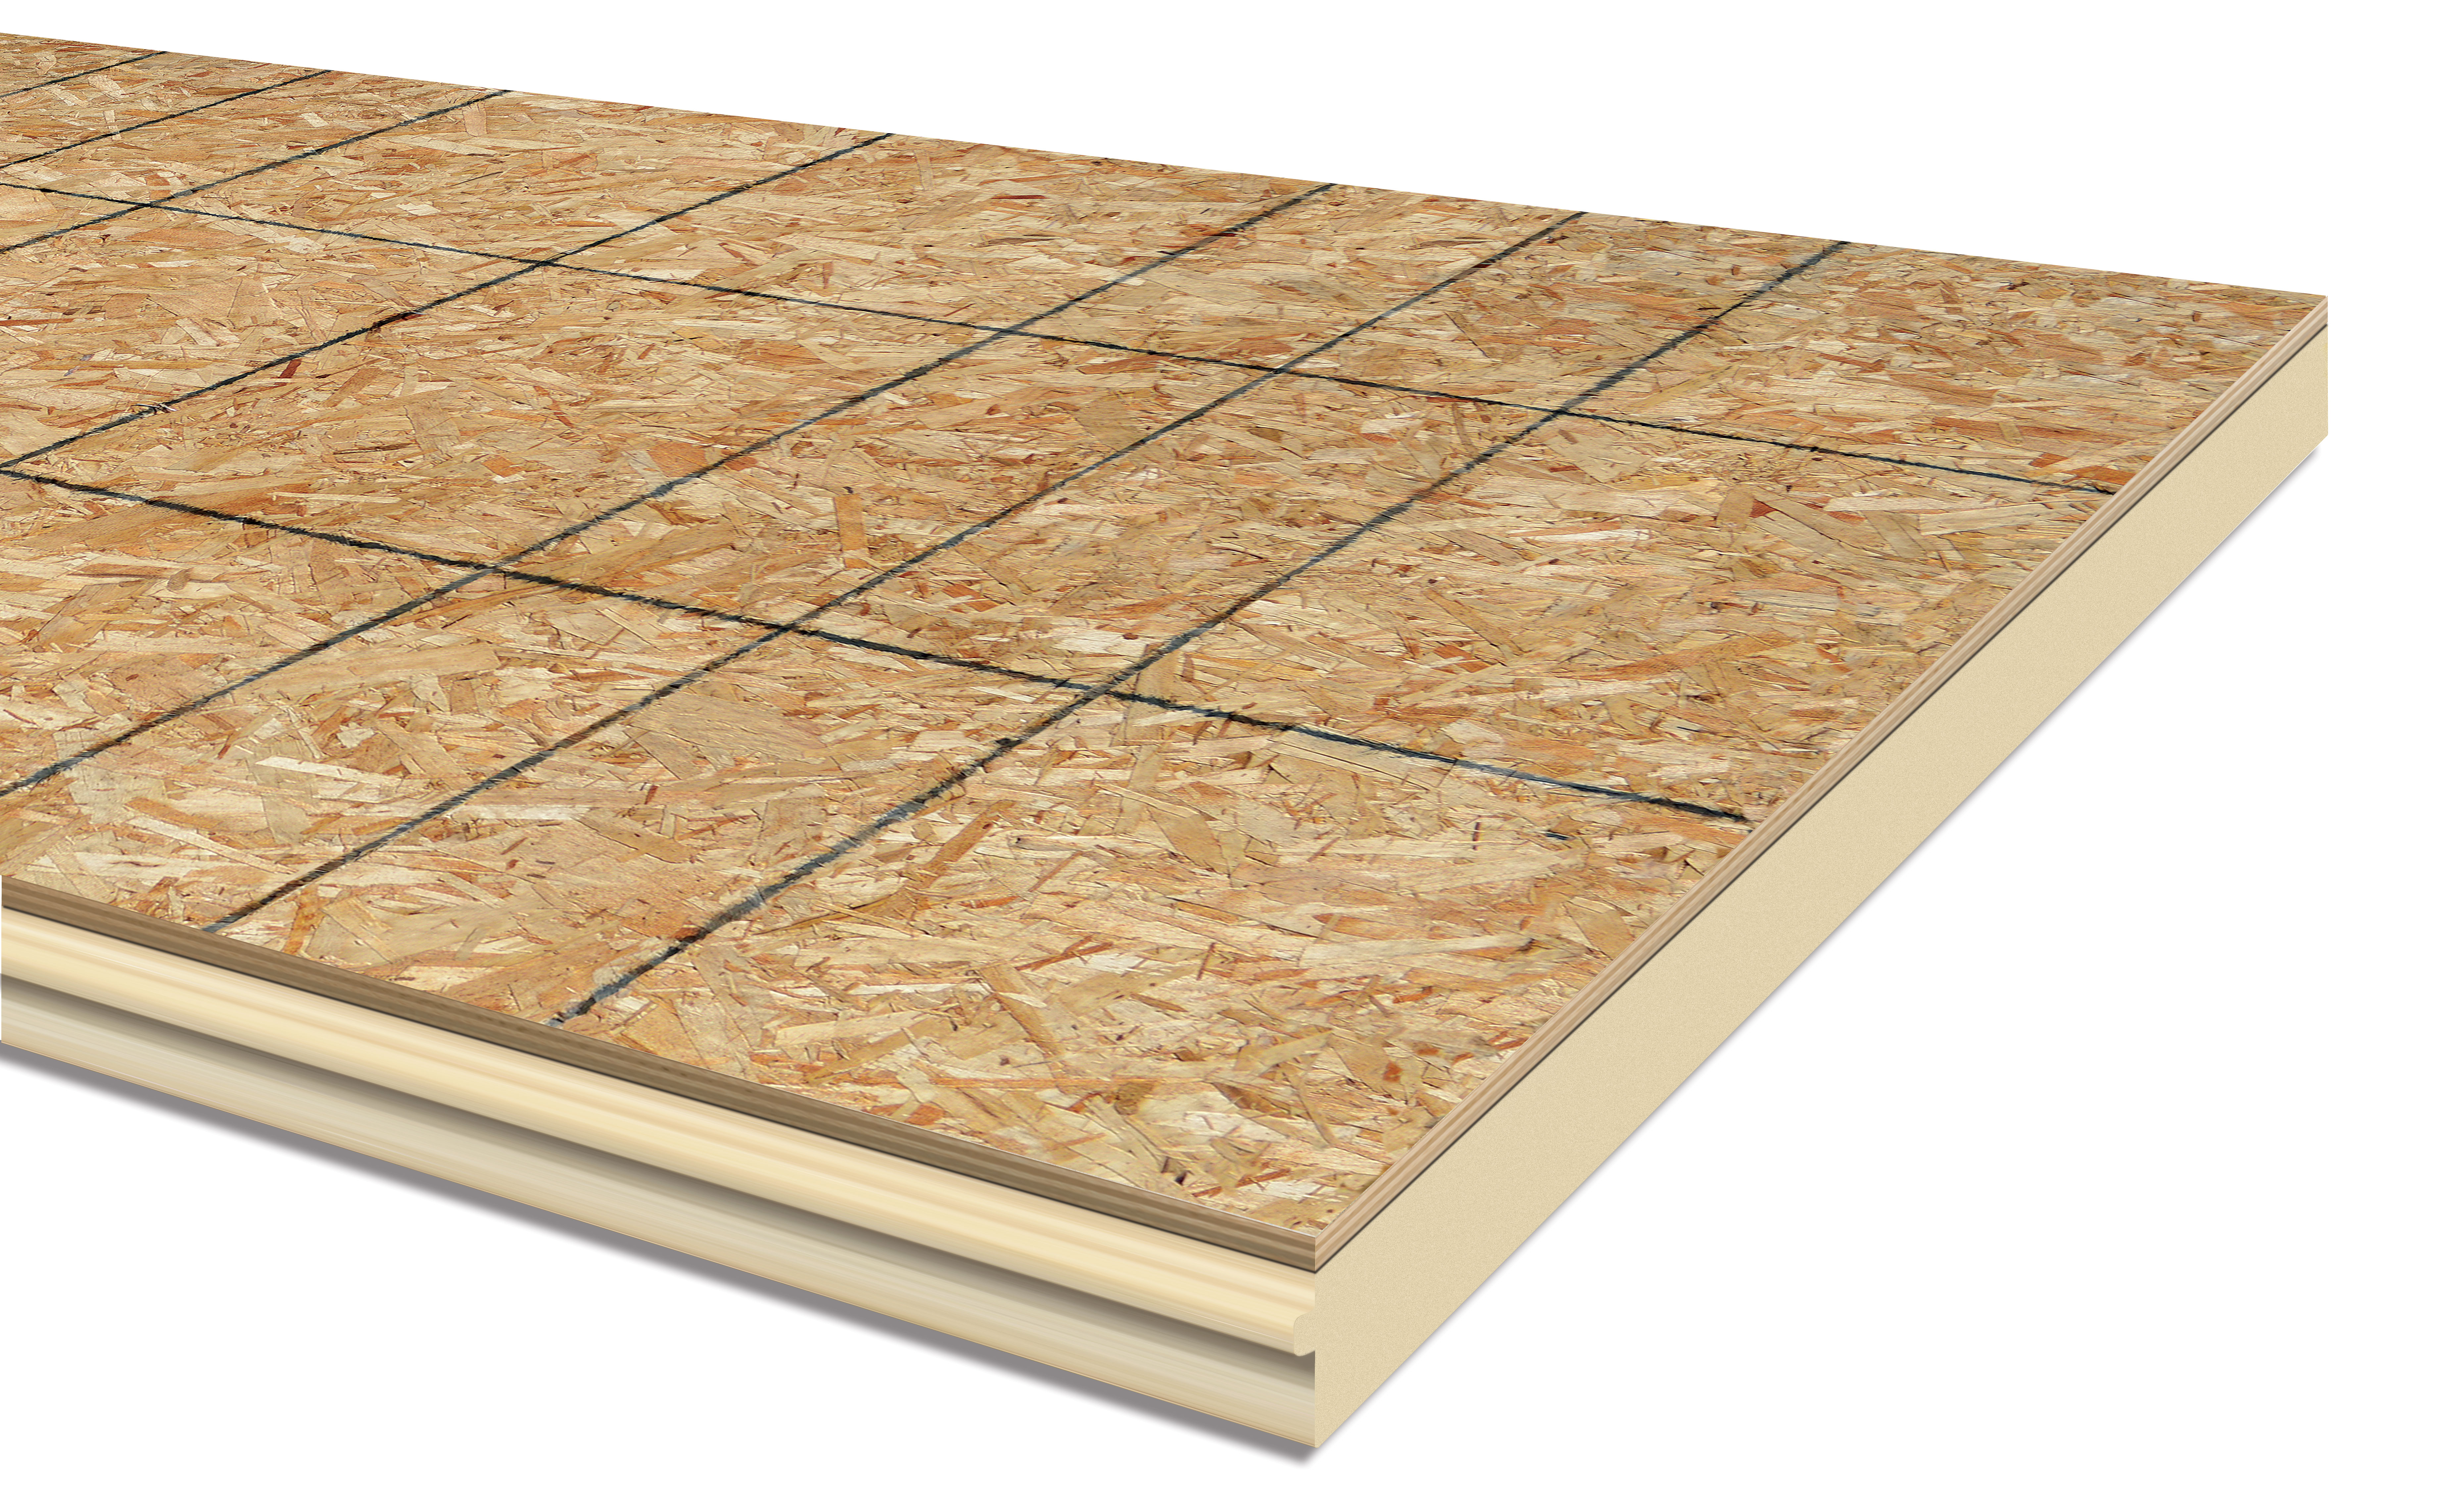 Gaf Introduces Thermacal Wall Exterior Insulation Panels